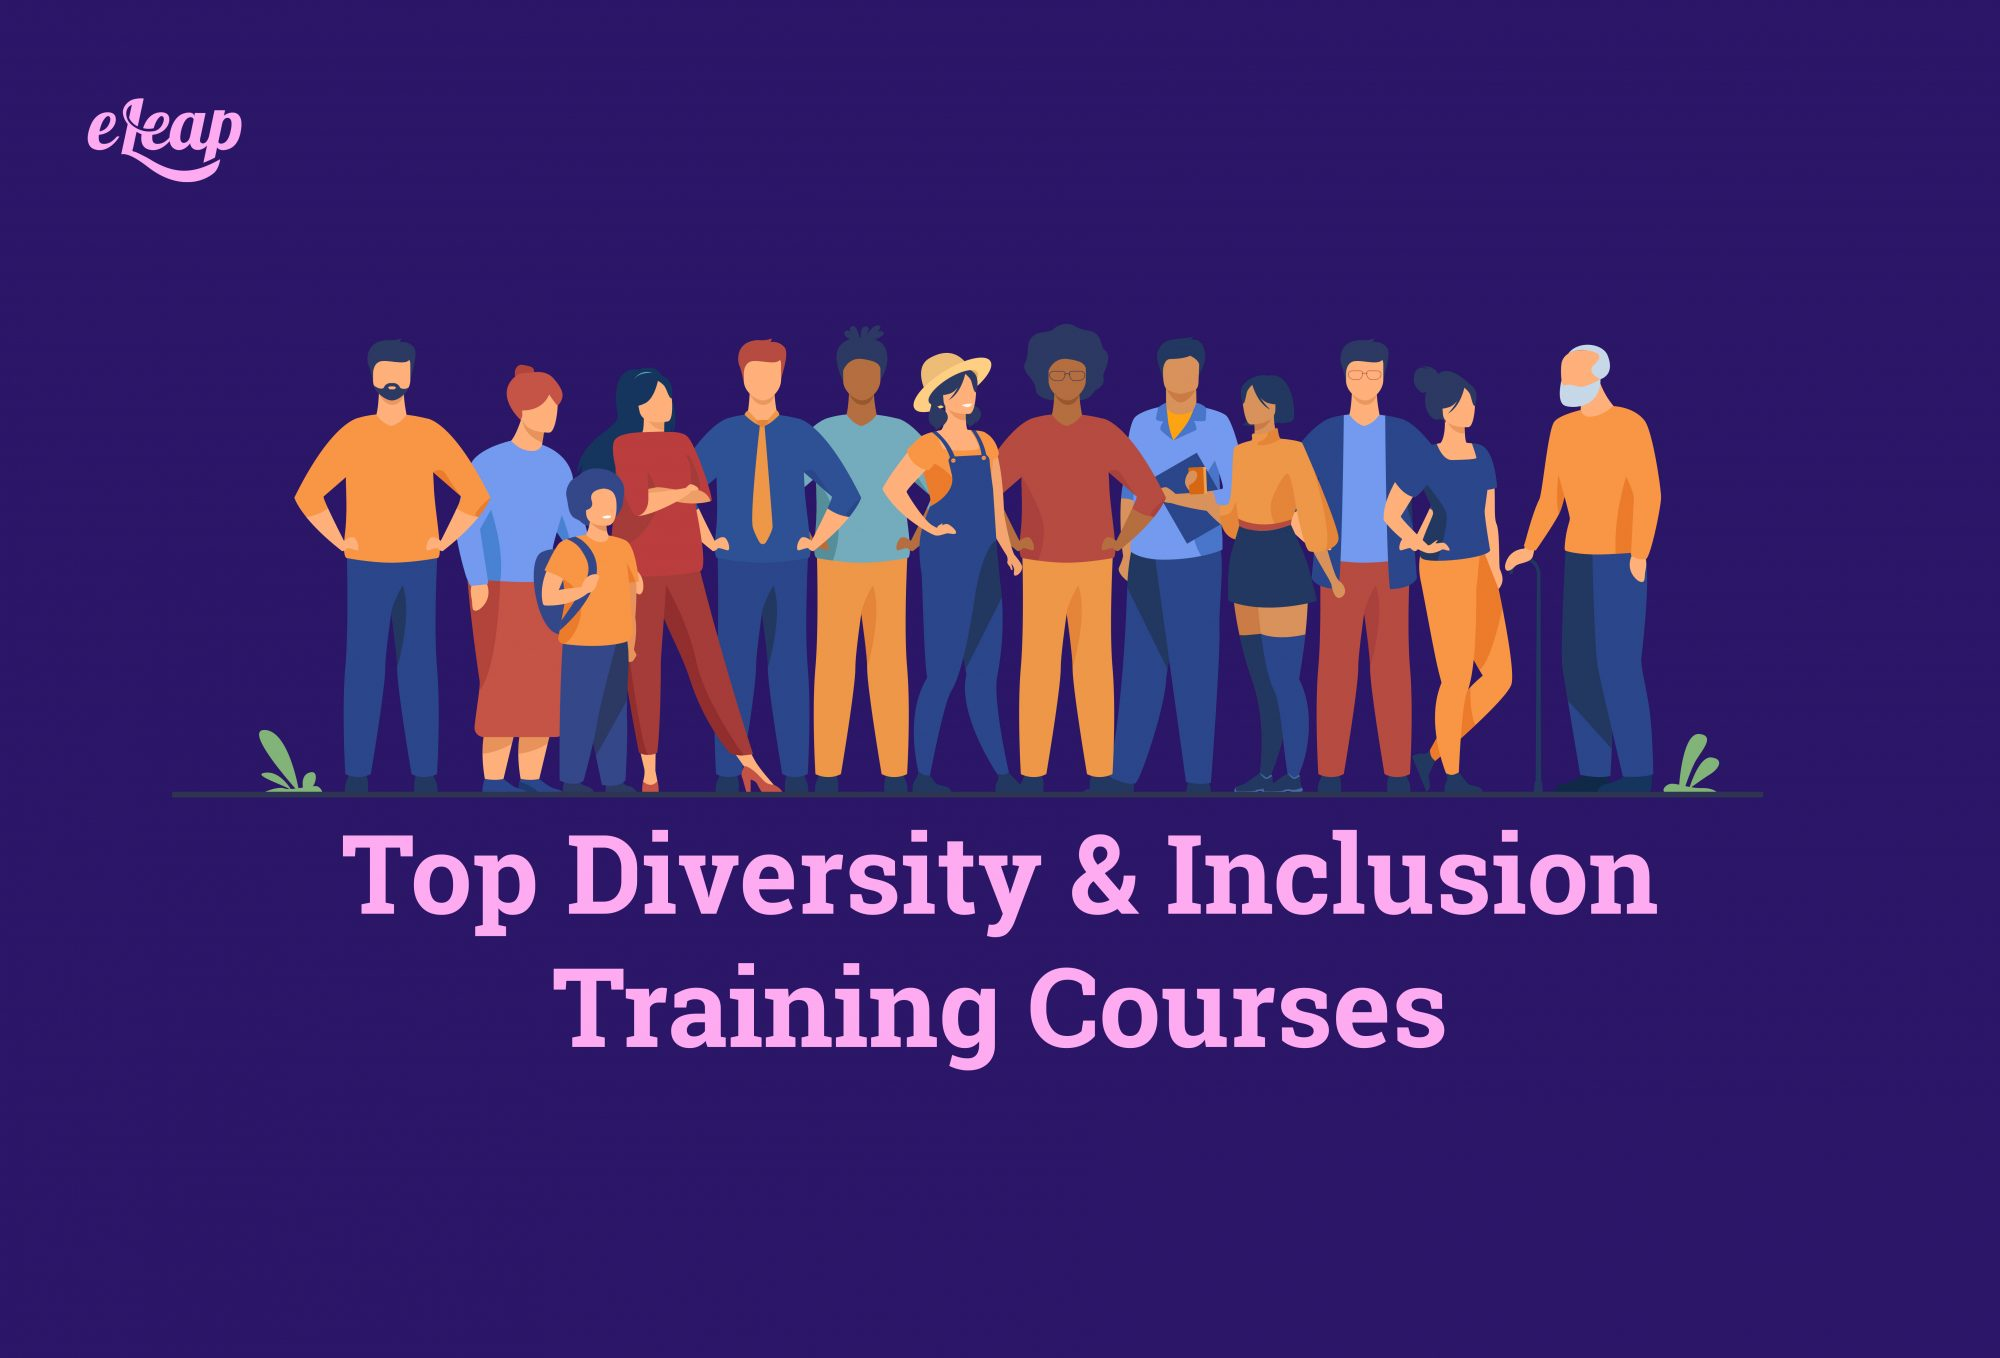 Top diversity and inclusion training courses